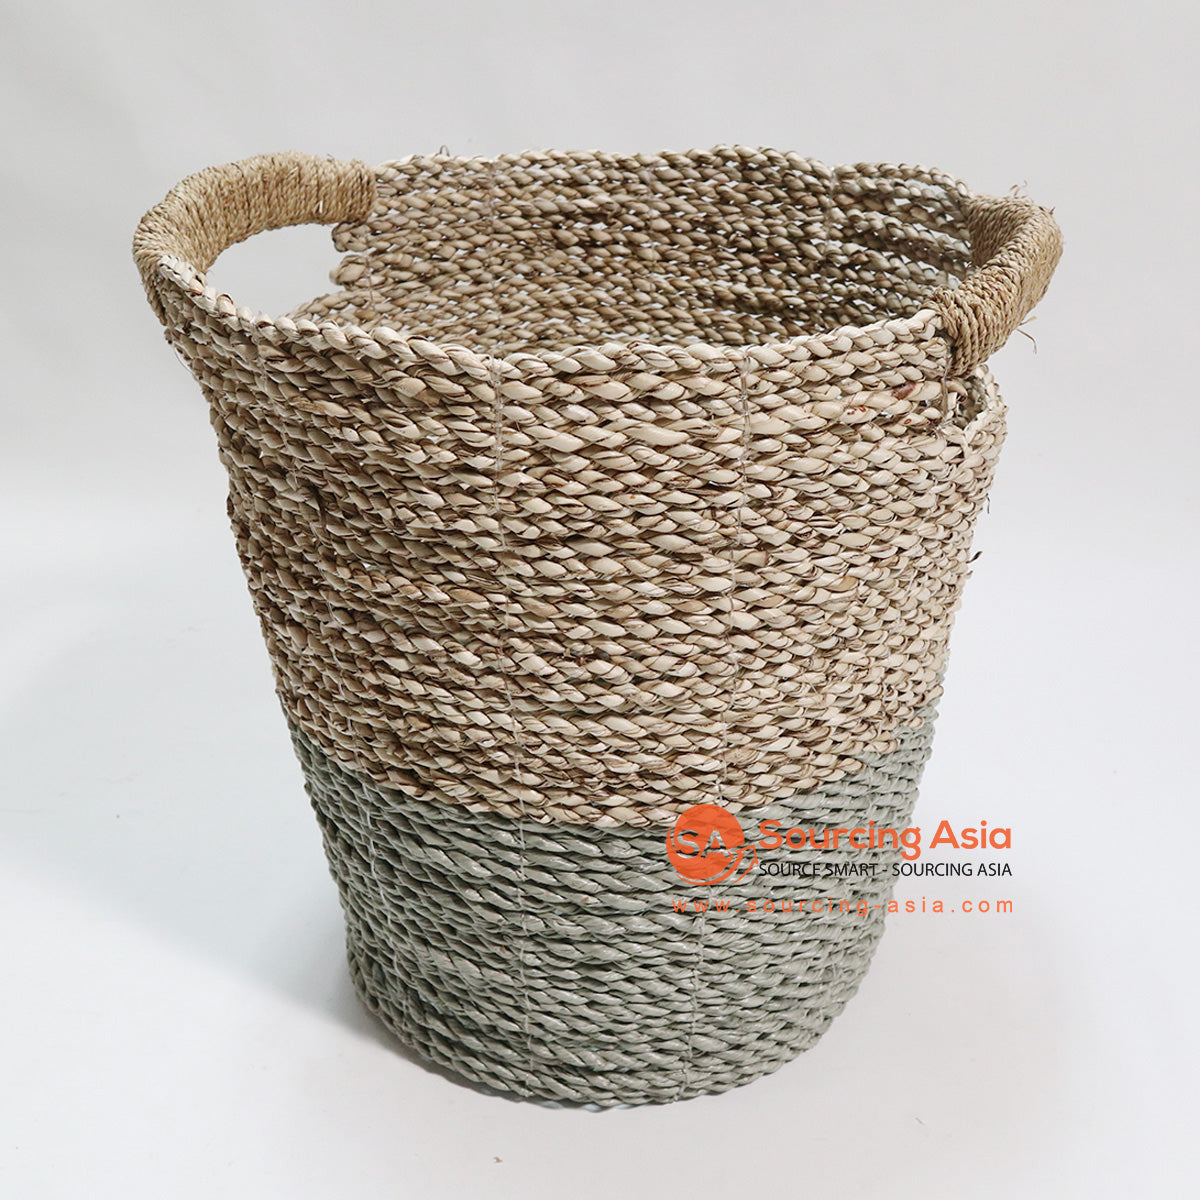 HBSC070 SEA GRASS WASTE PAPER BASKET